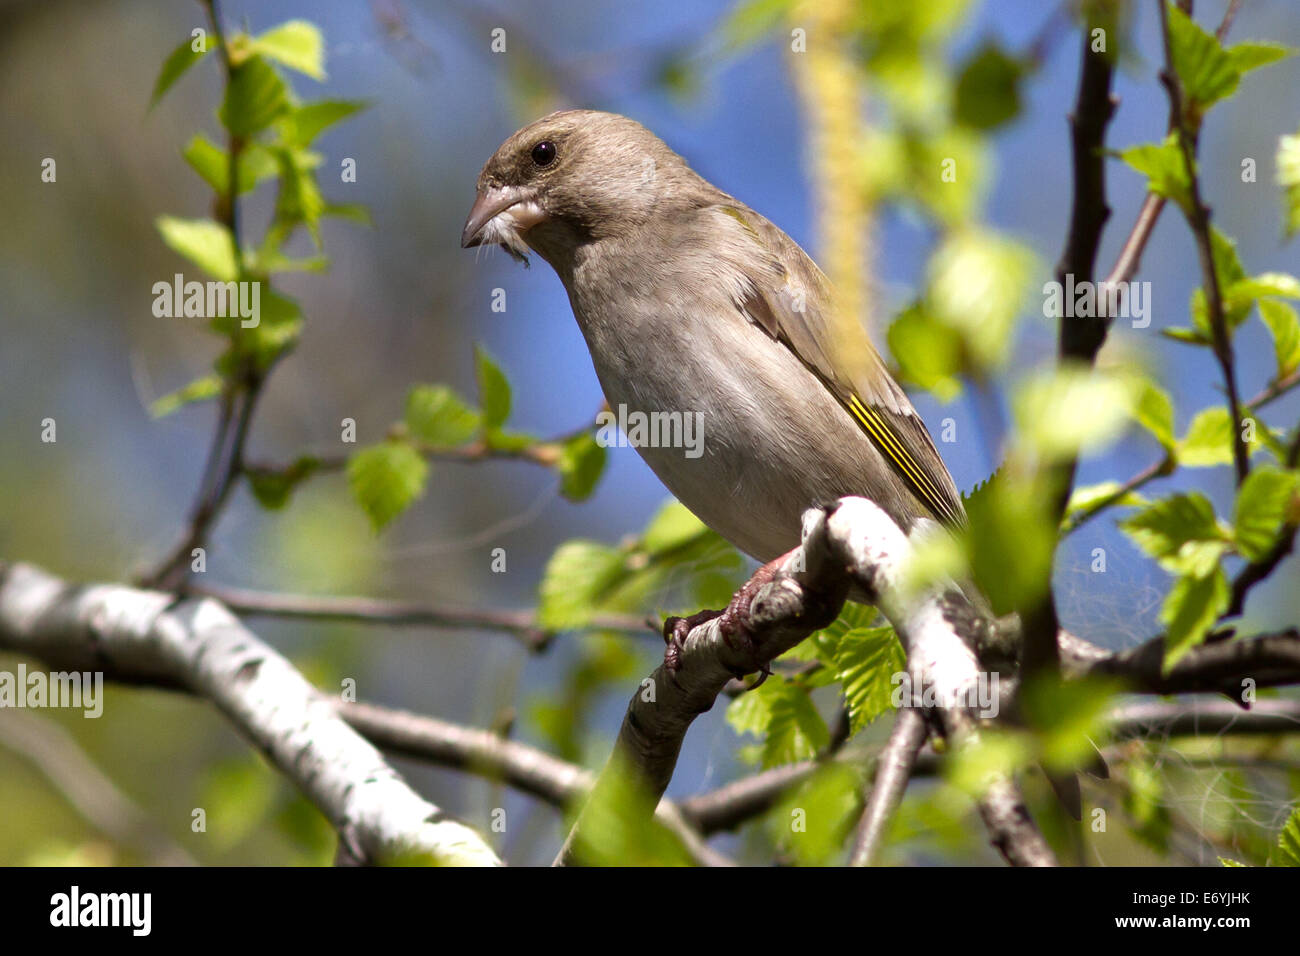 female greenfinches which holds in a beak feathers for nest building - Stock Image